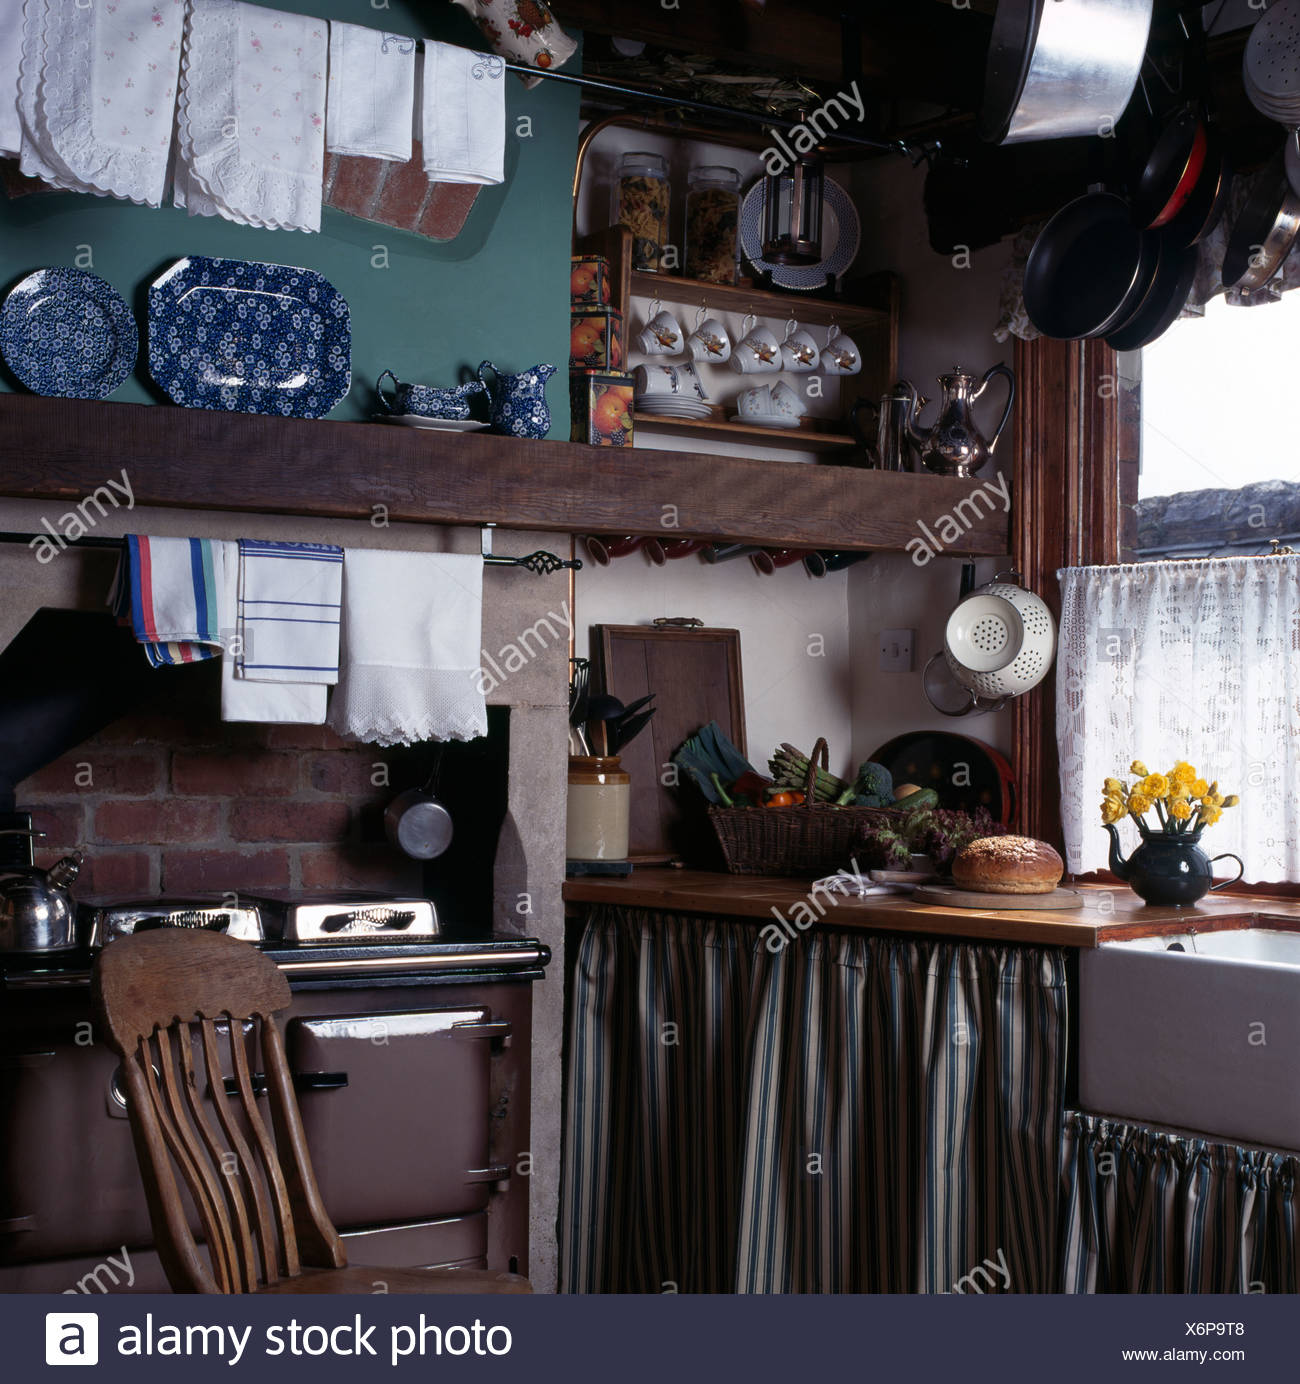 Striped curtains on units in small cottage kitchen with linen airing on rail above brown range oven